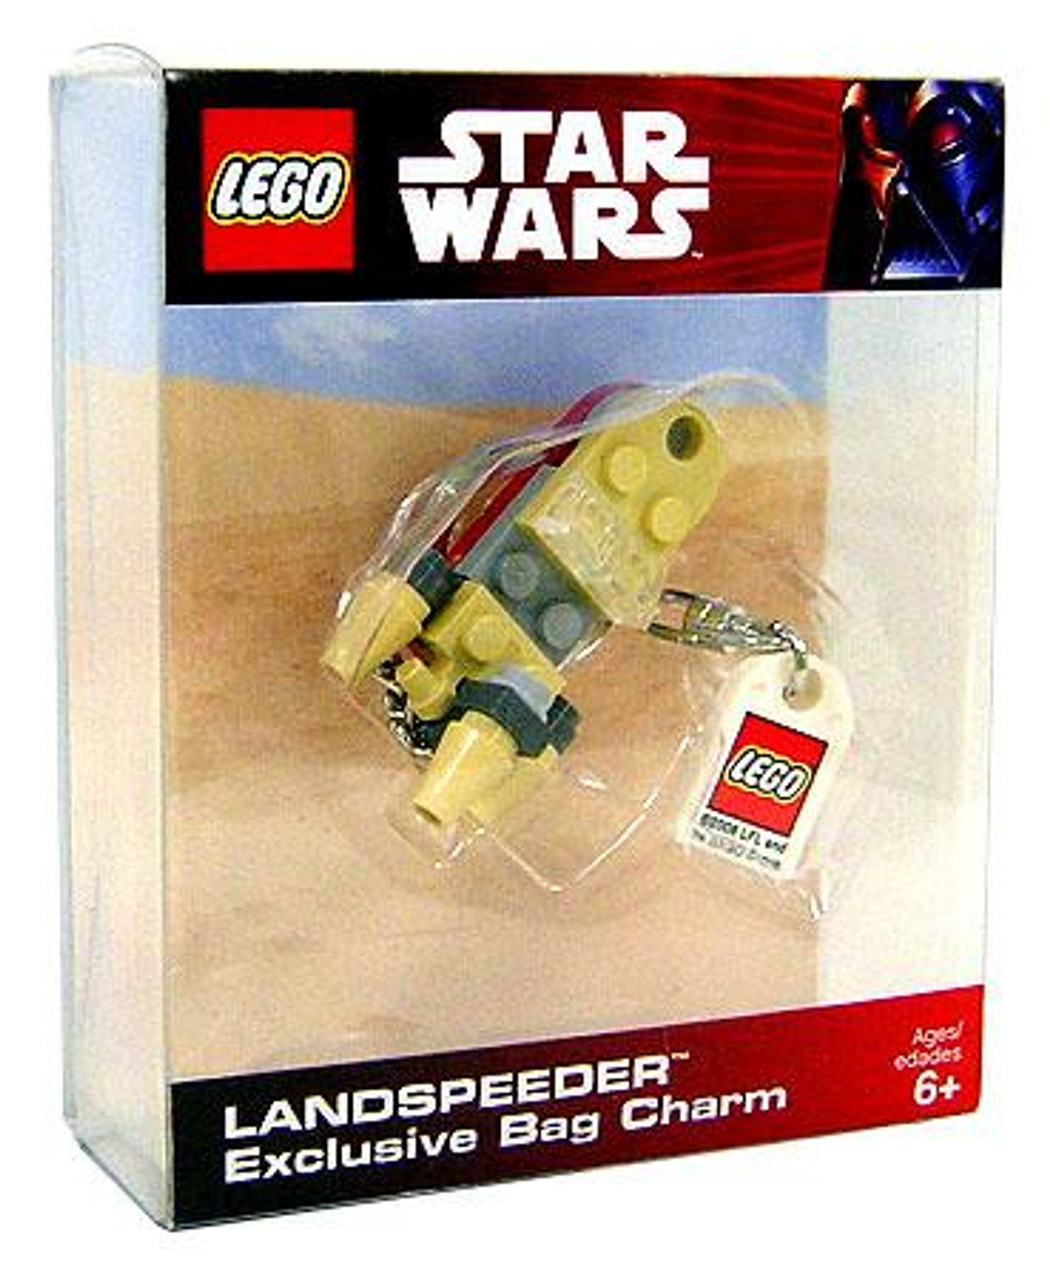 LEGO Star Wars Landspeeder Bag Charm Exclusive